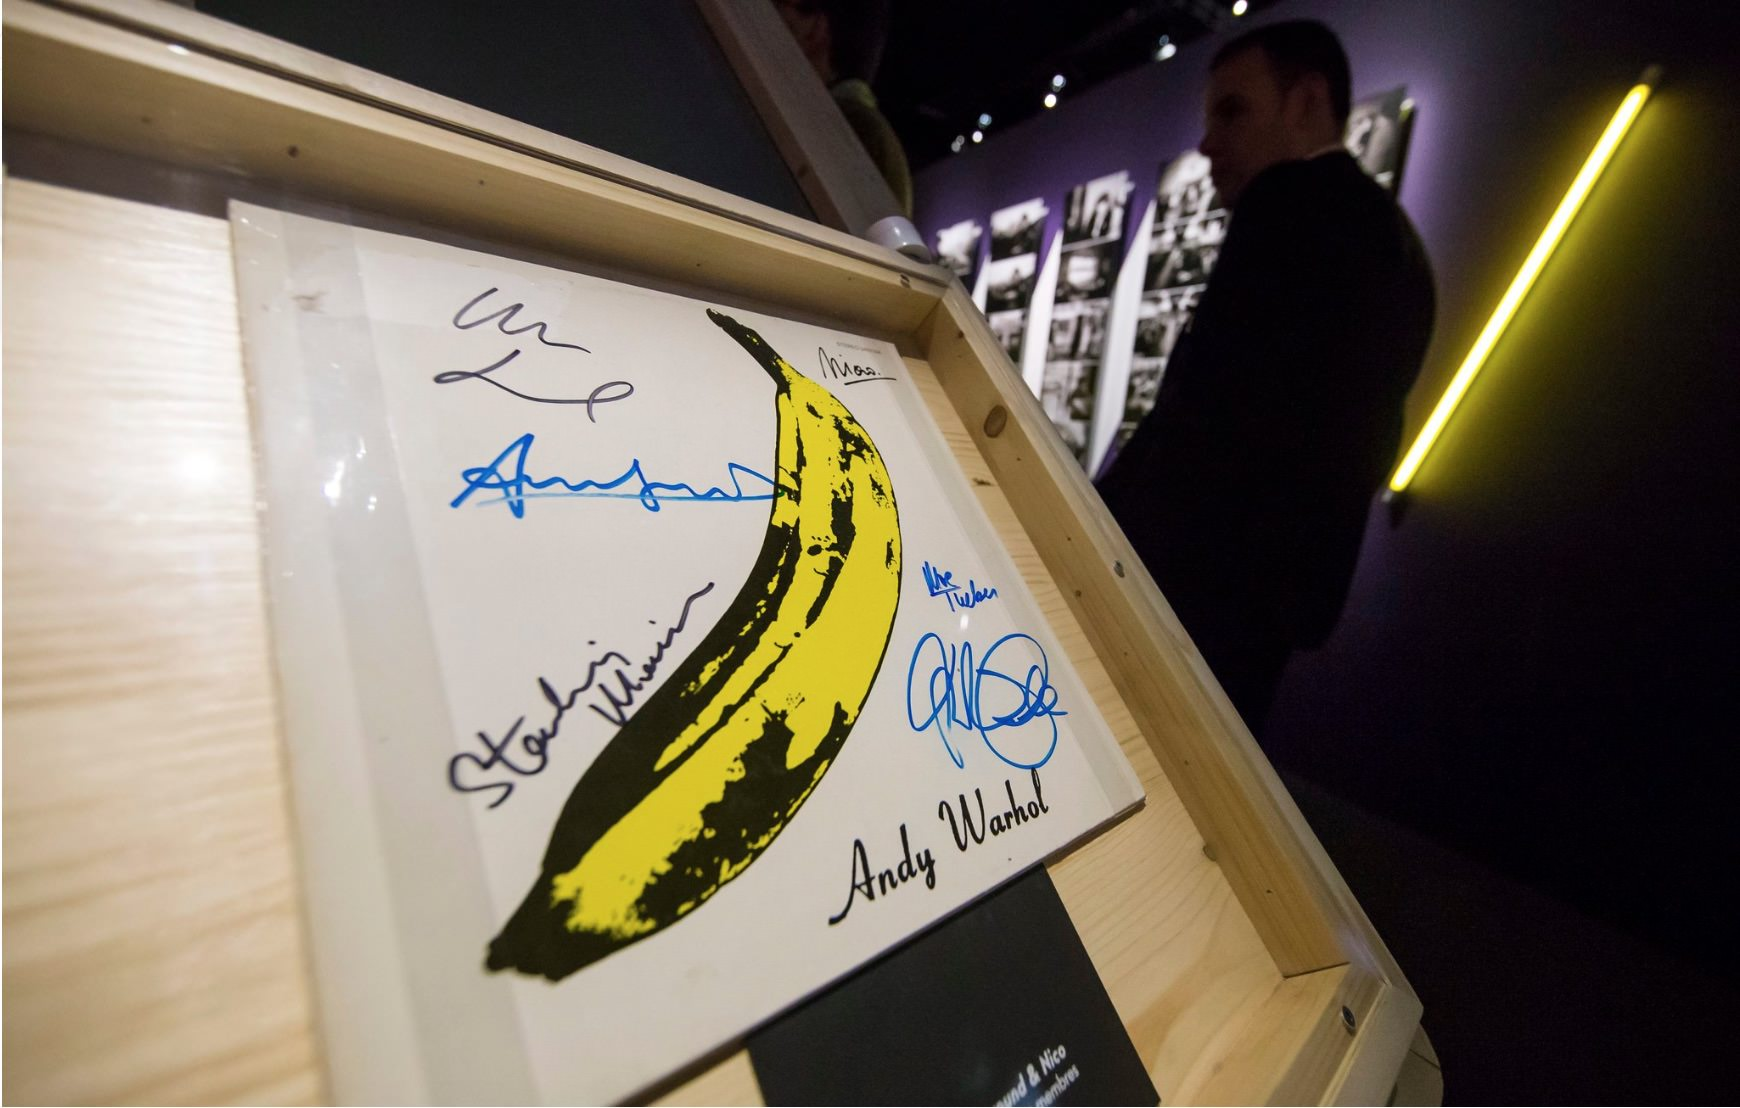 A signed edition of the Velvet Underground's first album is featured in the Philharmonie exhibition.